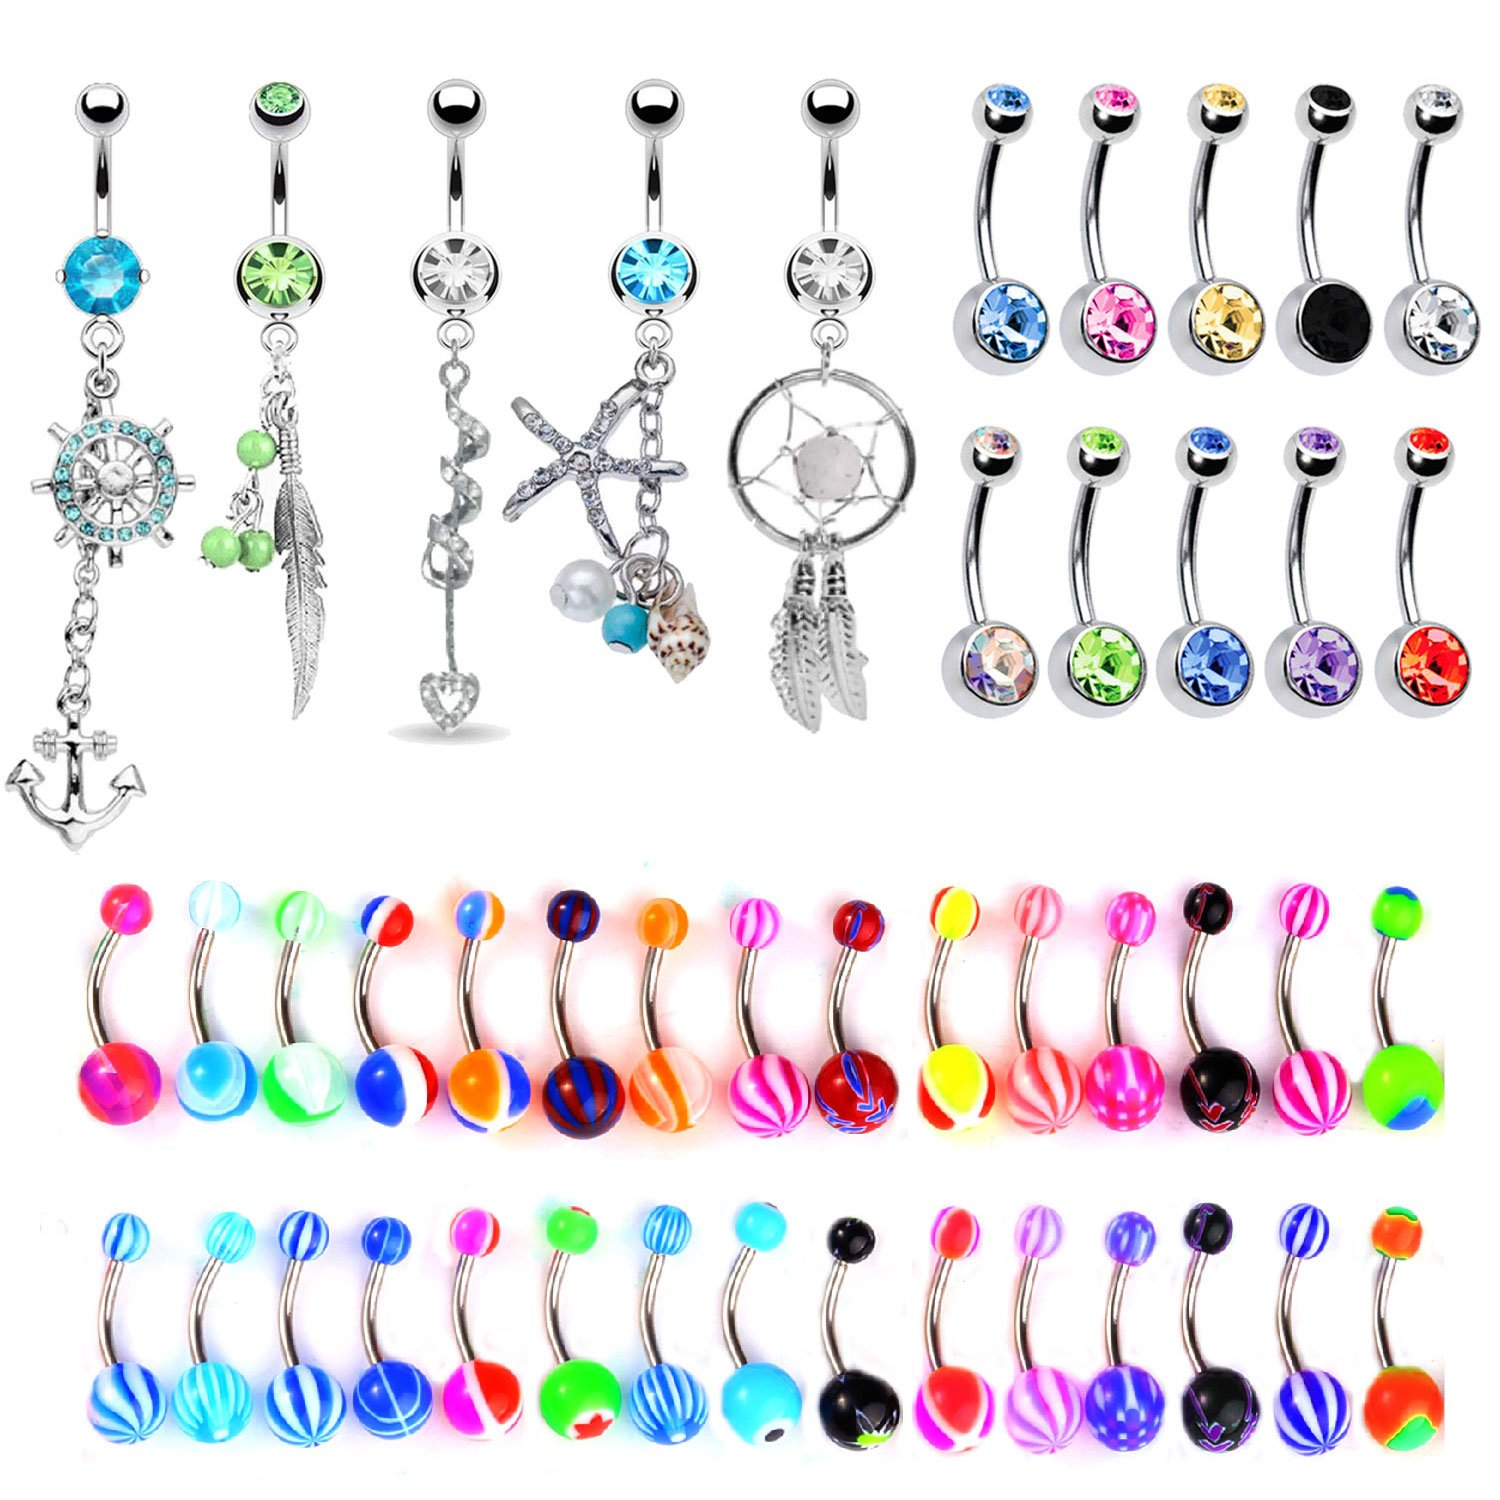 BodyJ4You 65 Belly Button Rings Dangle Barbells 14G Acrylic Stainless Steel CZ Navel Body Jewelry